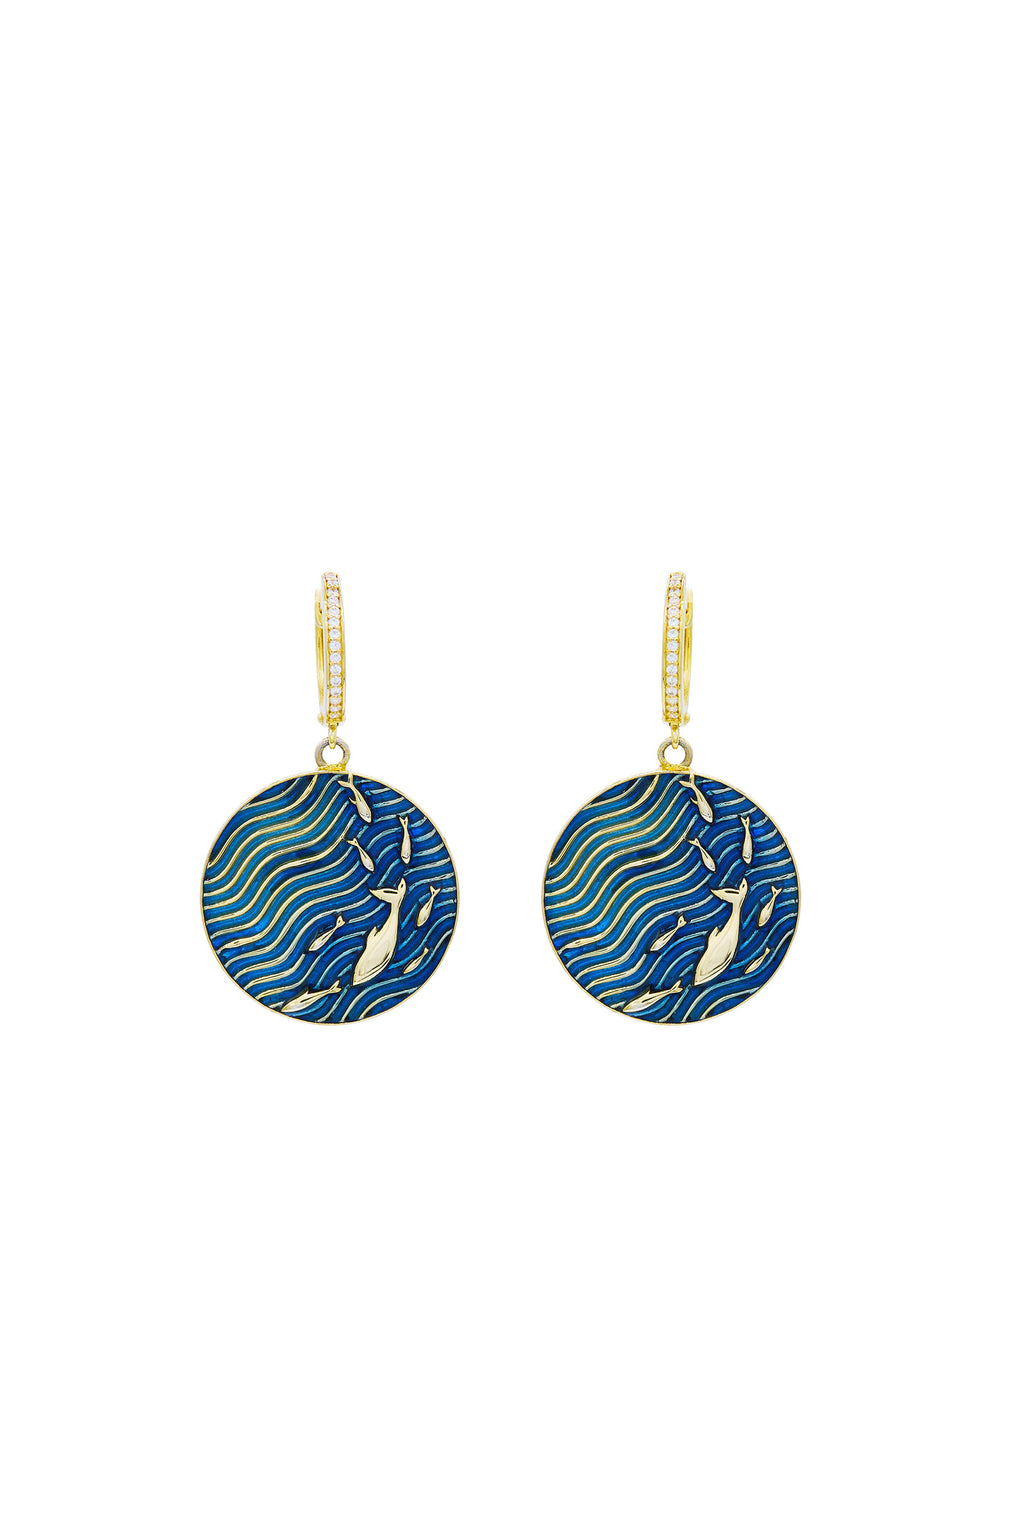 Aquarium Fish School Earrings